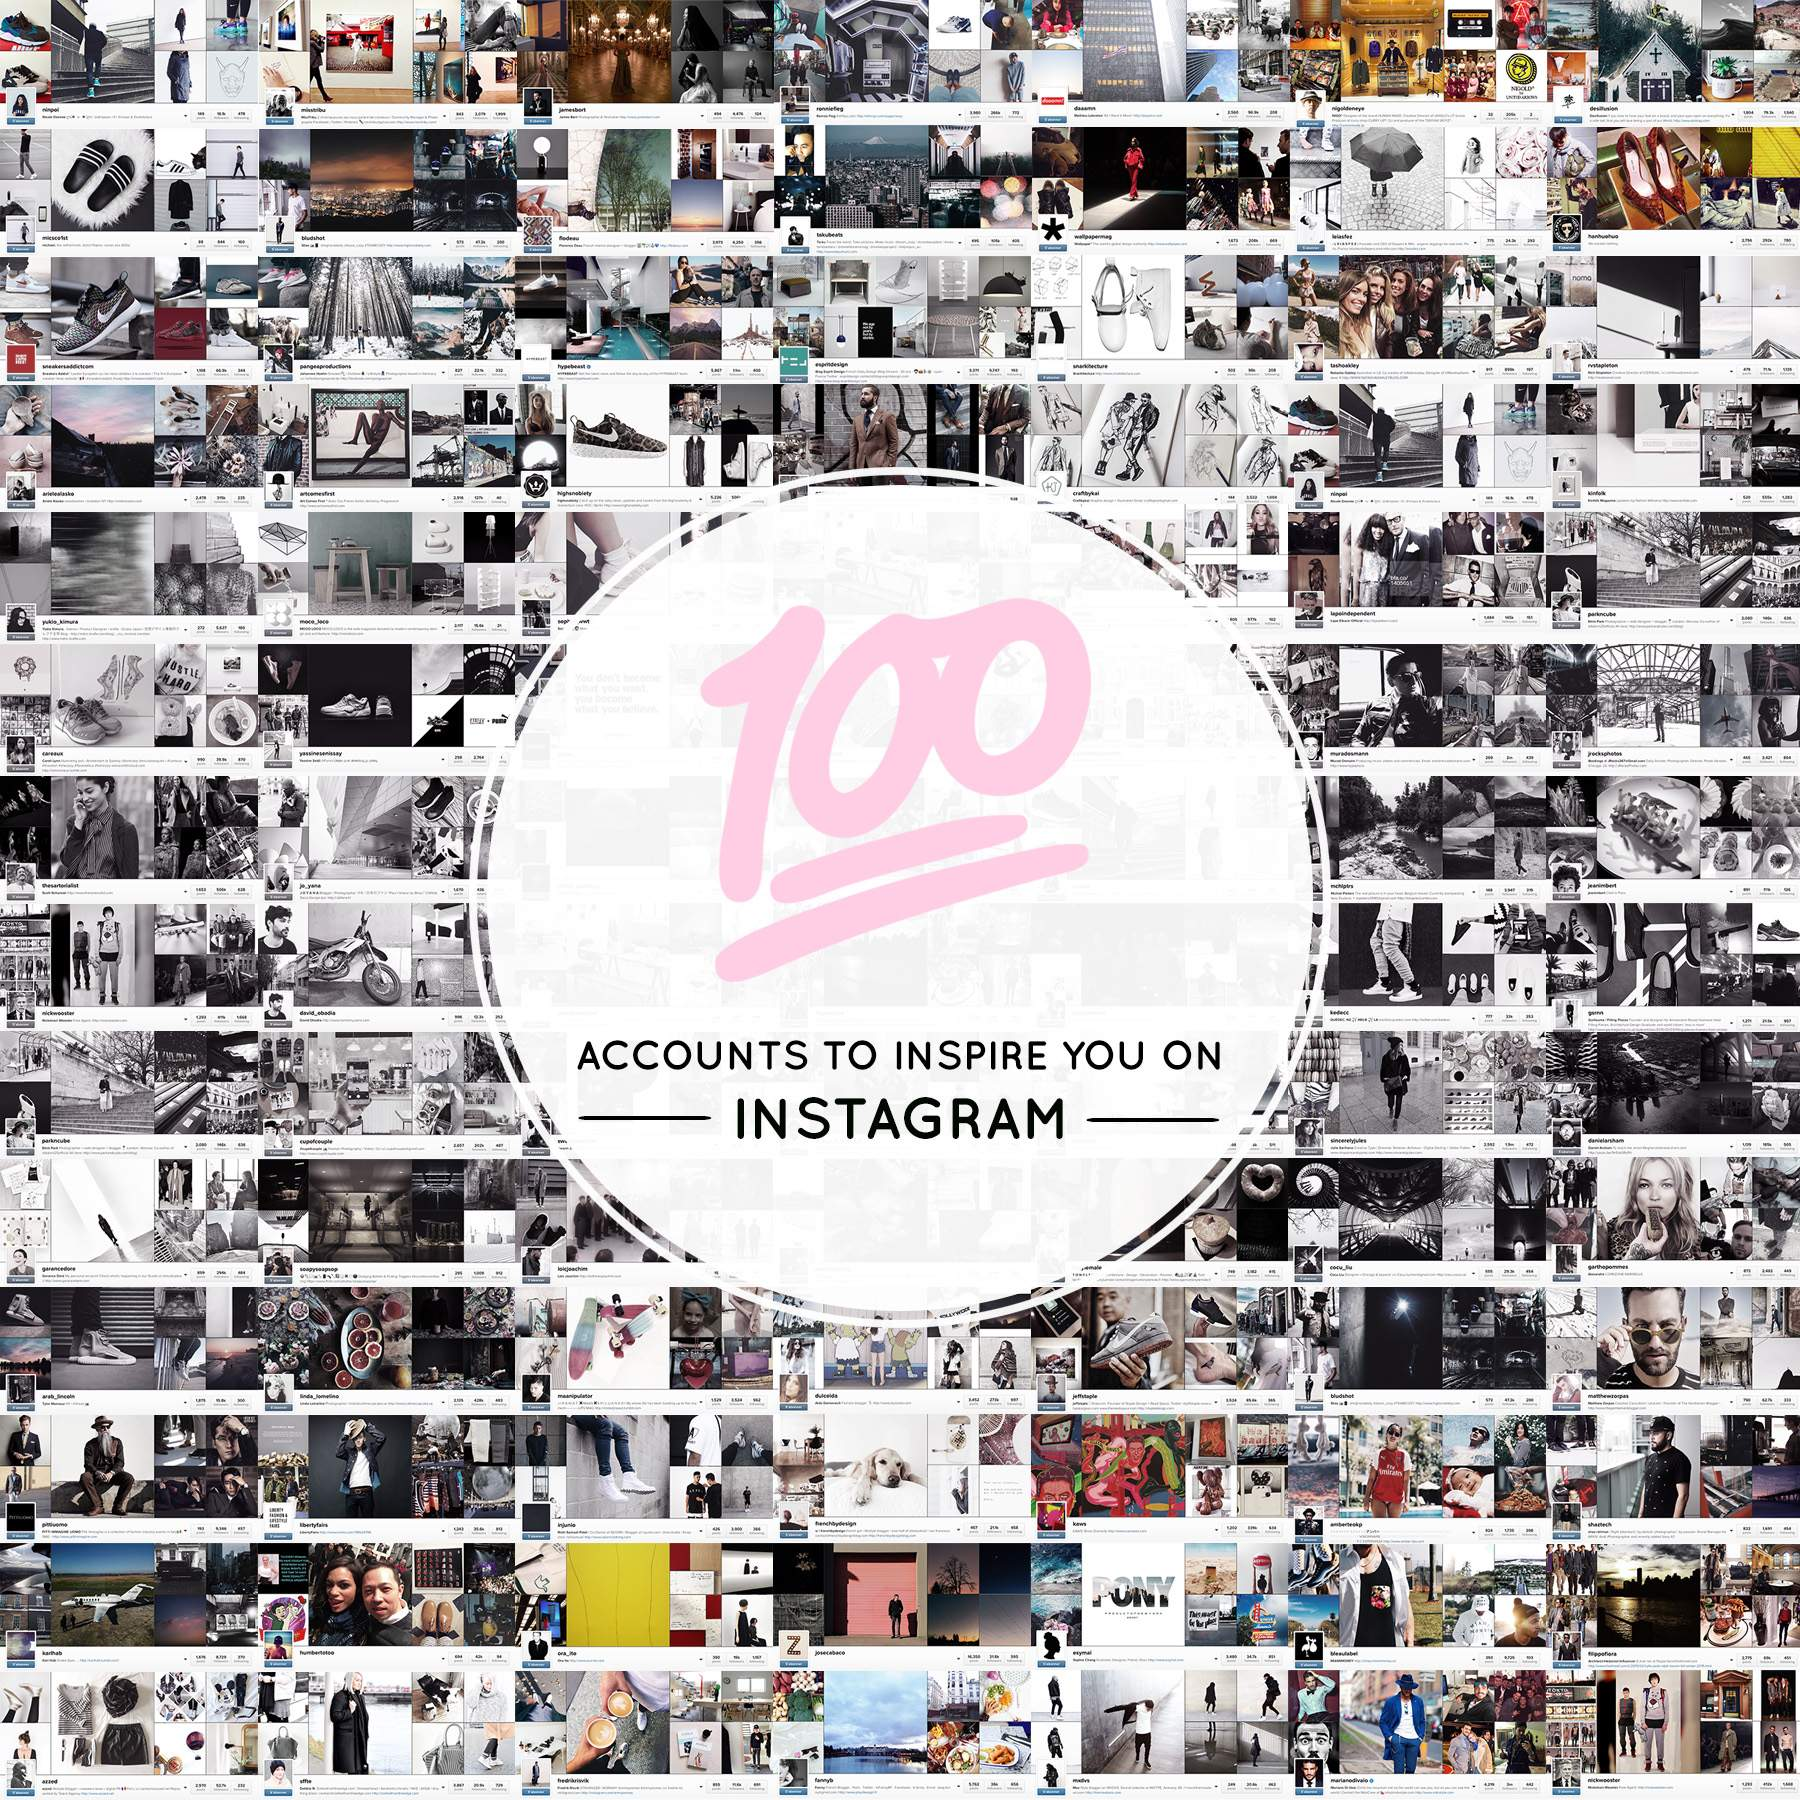 100 ACCOUNTS TO INSPIRE YOU ON INSTAGRAM